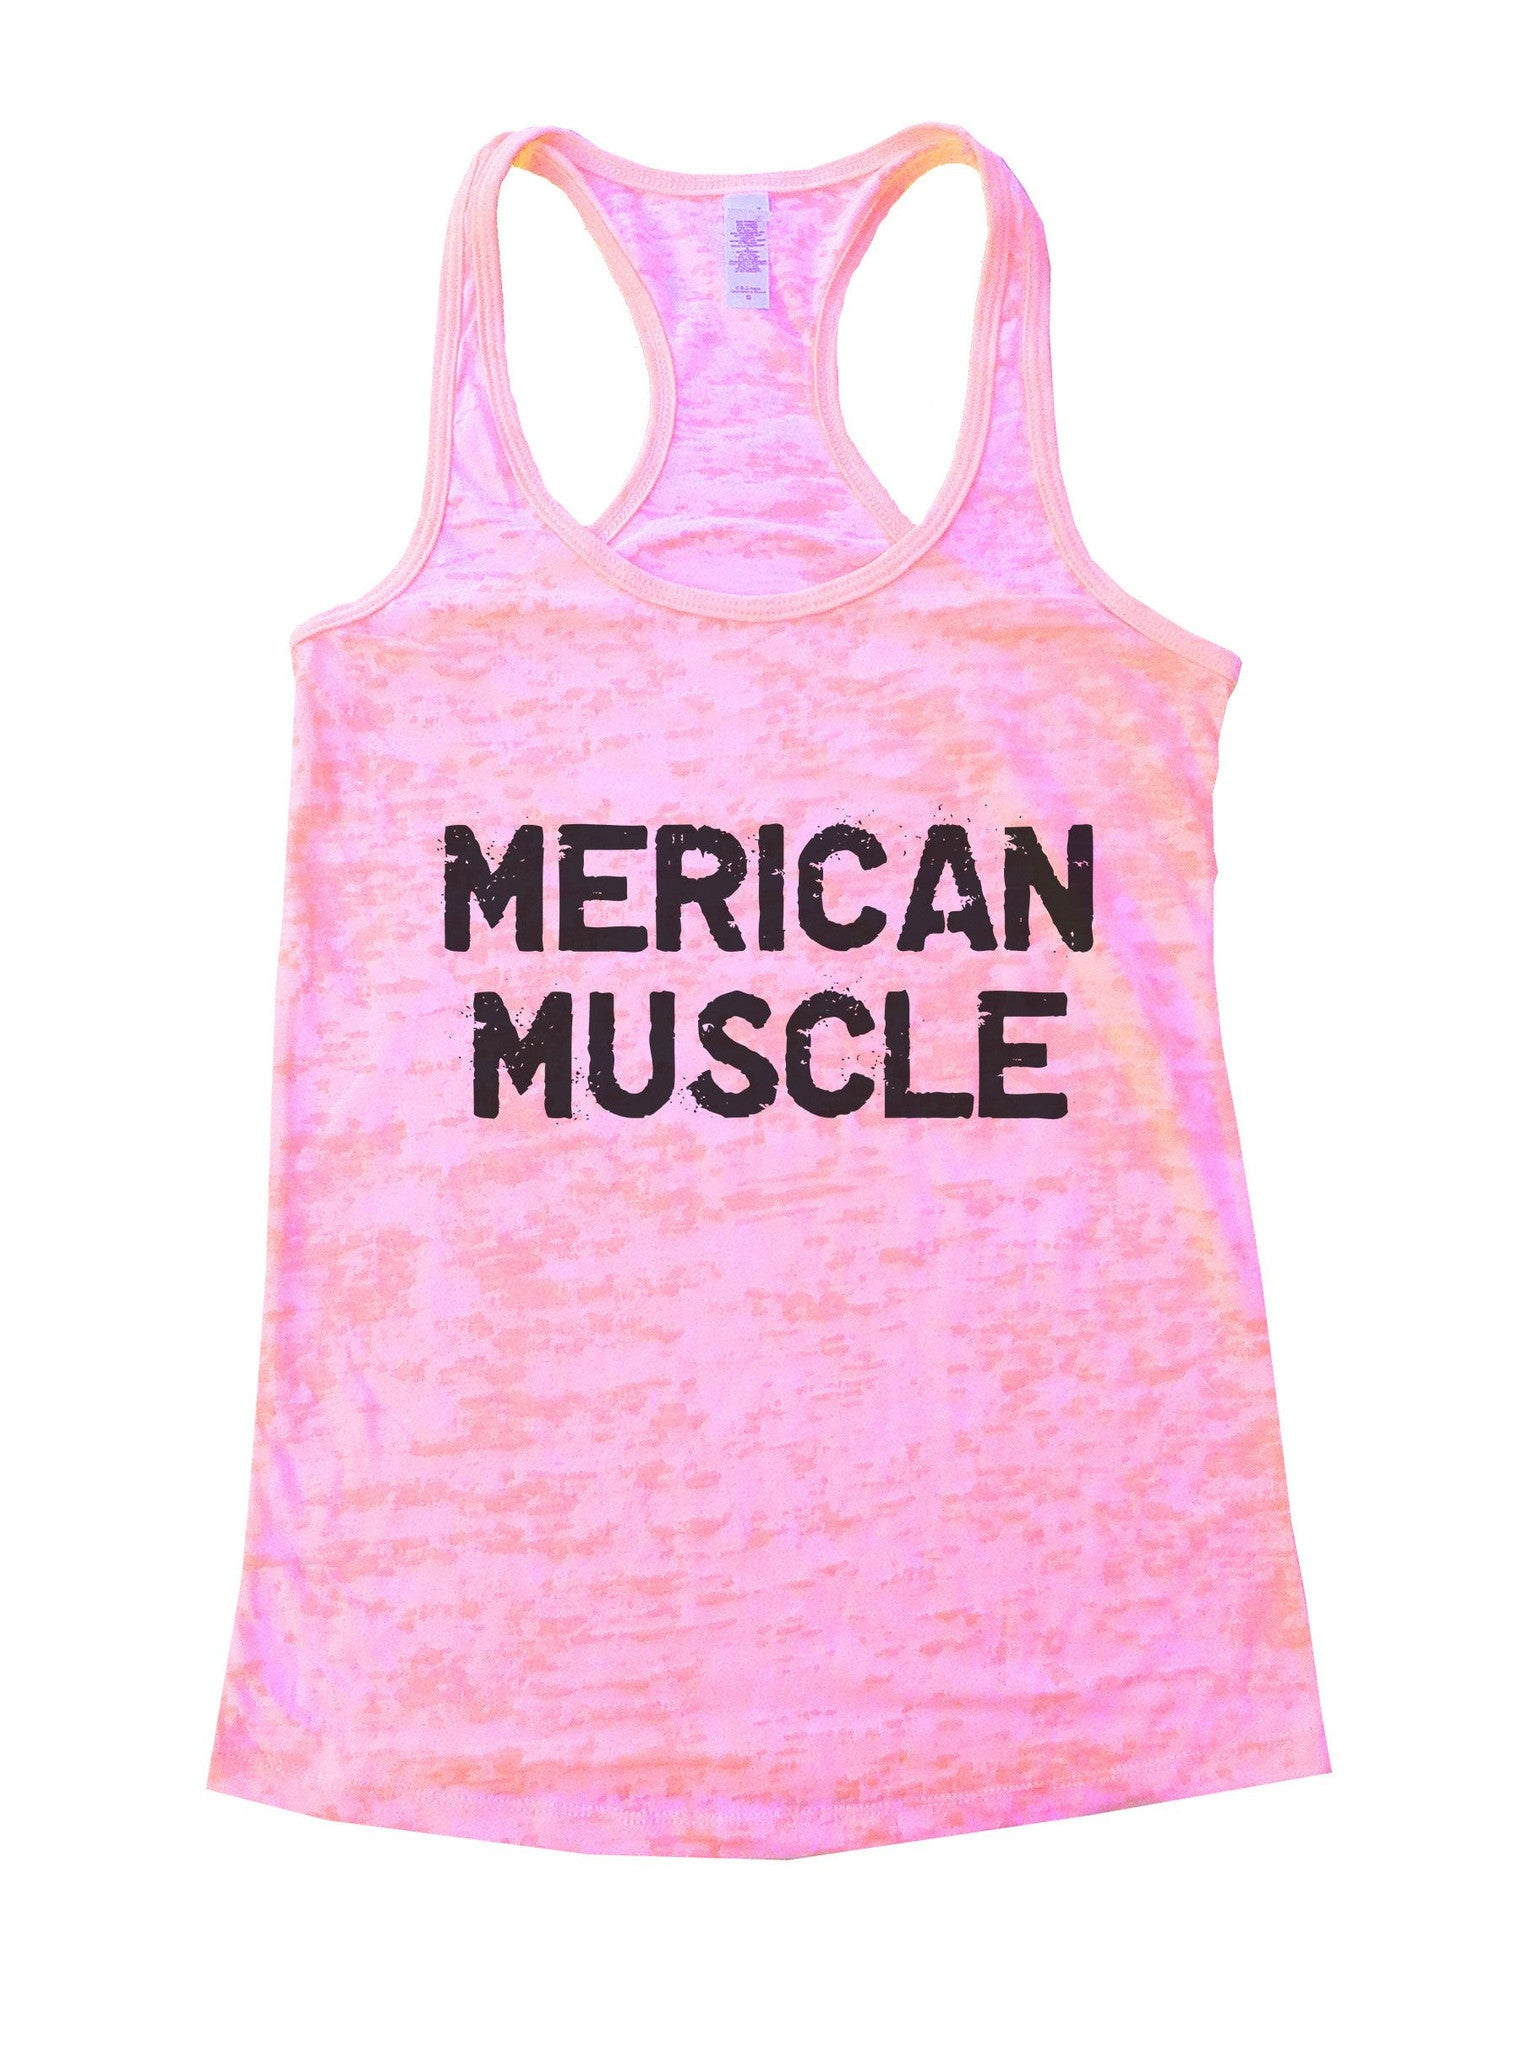 Merican Muscle Burnout Tank Top By BurnoutTankTops.com - 1022 - Funny Shirts Tank Tops Burnouts and Triblends  - 2